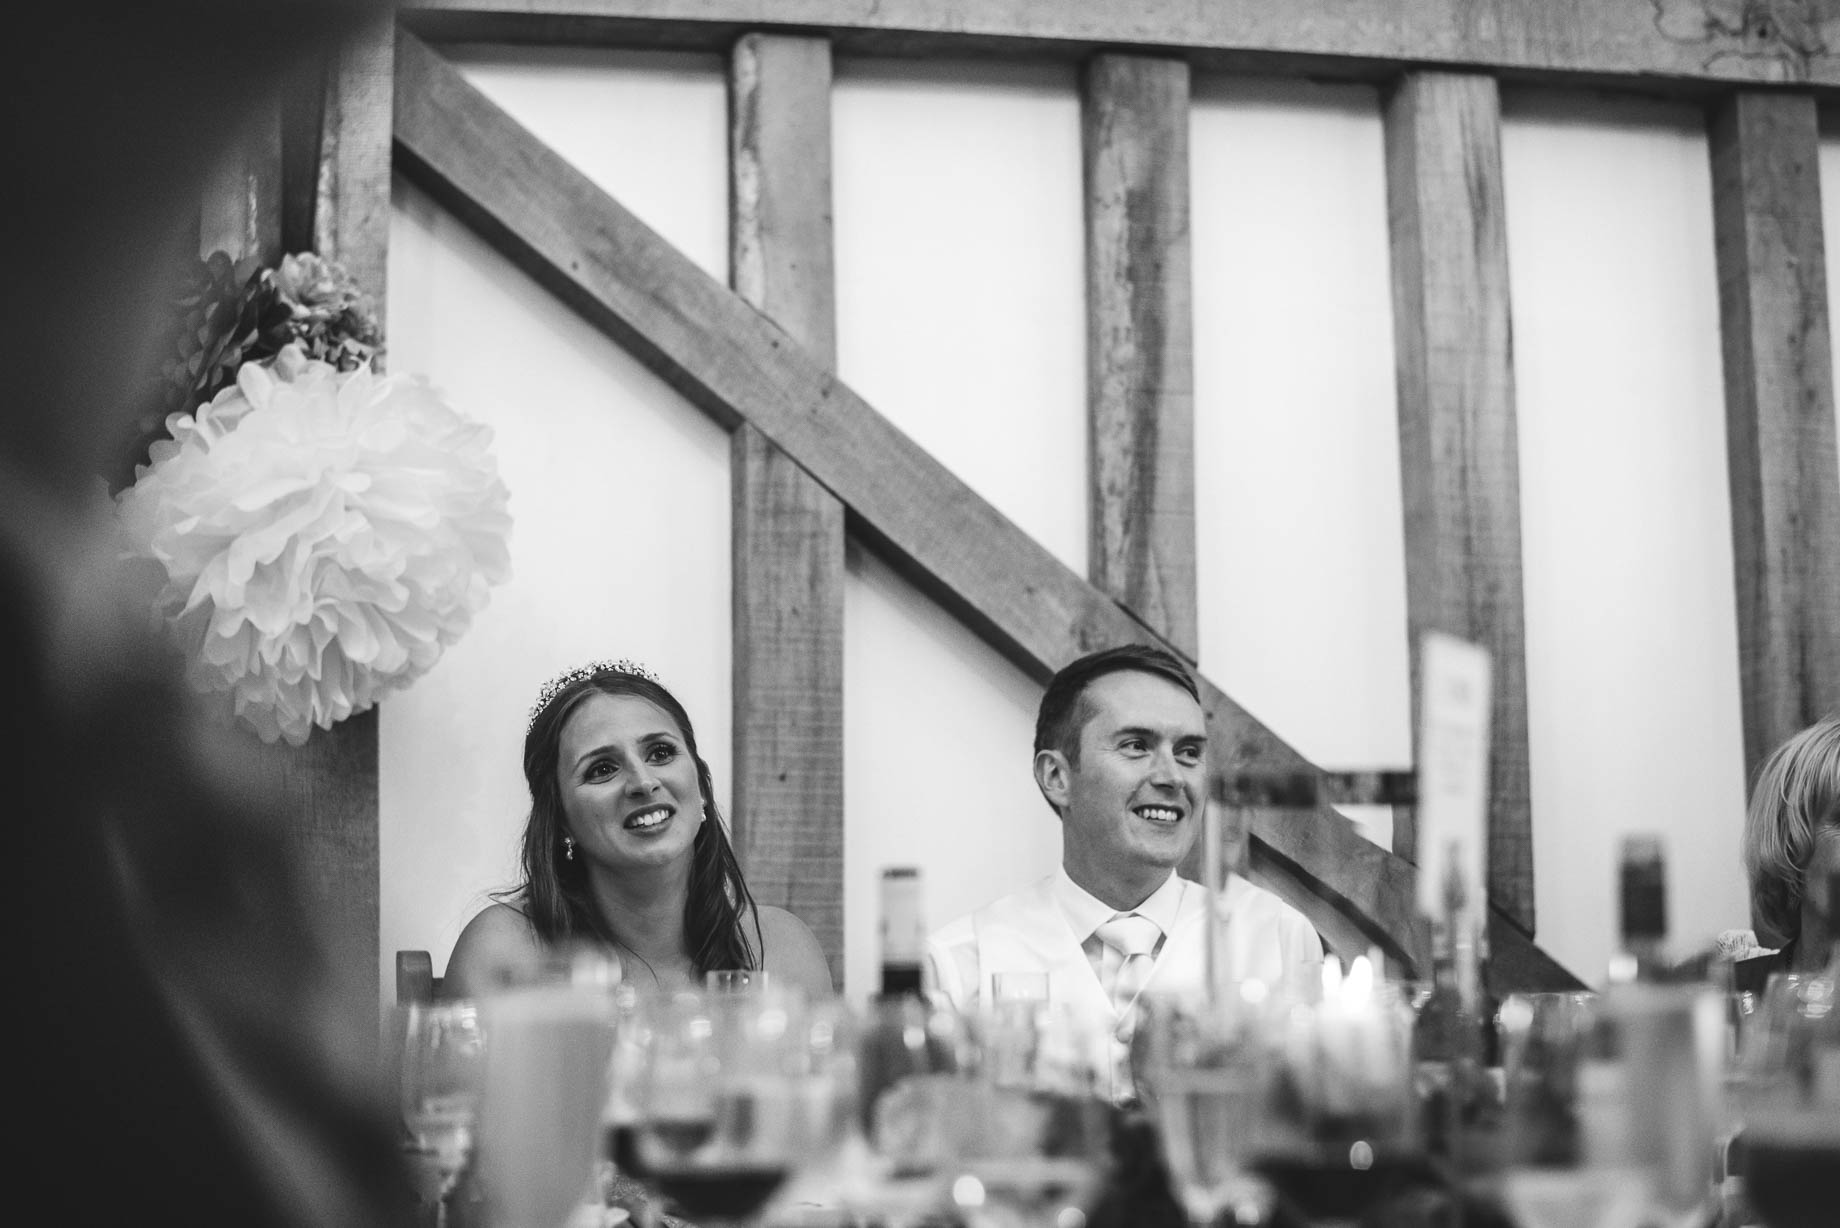 Gate Street Barn wedding photography - Guy Collier - Claire and Andy (129 of 192)